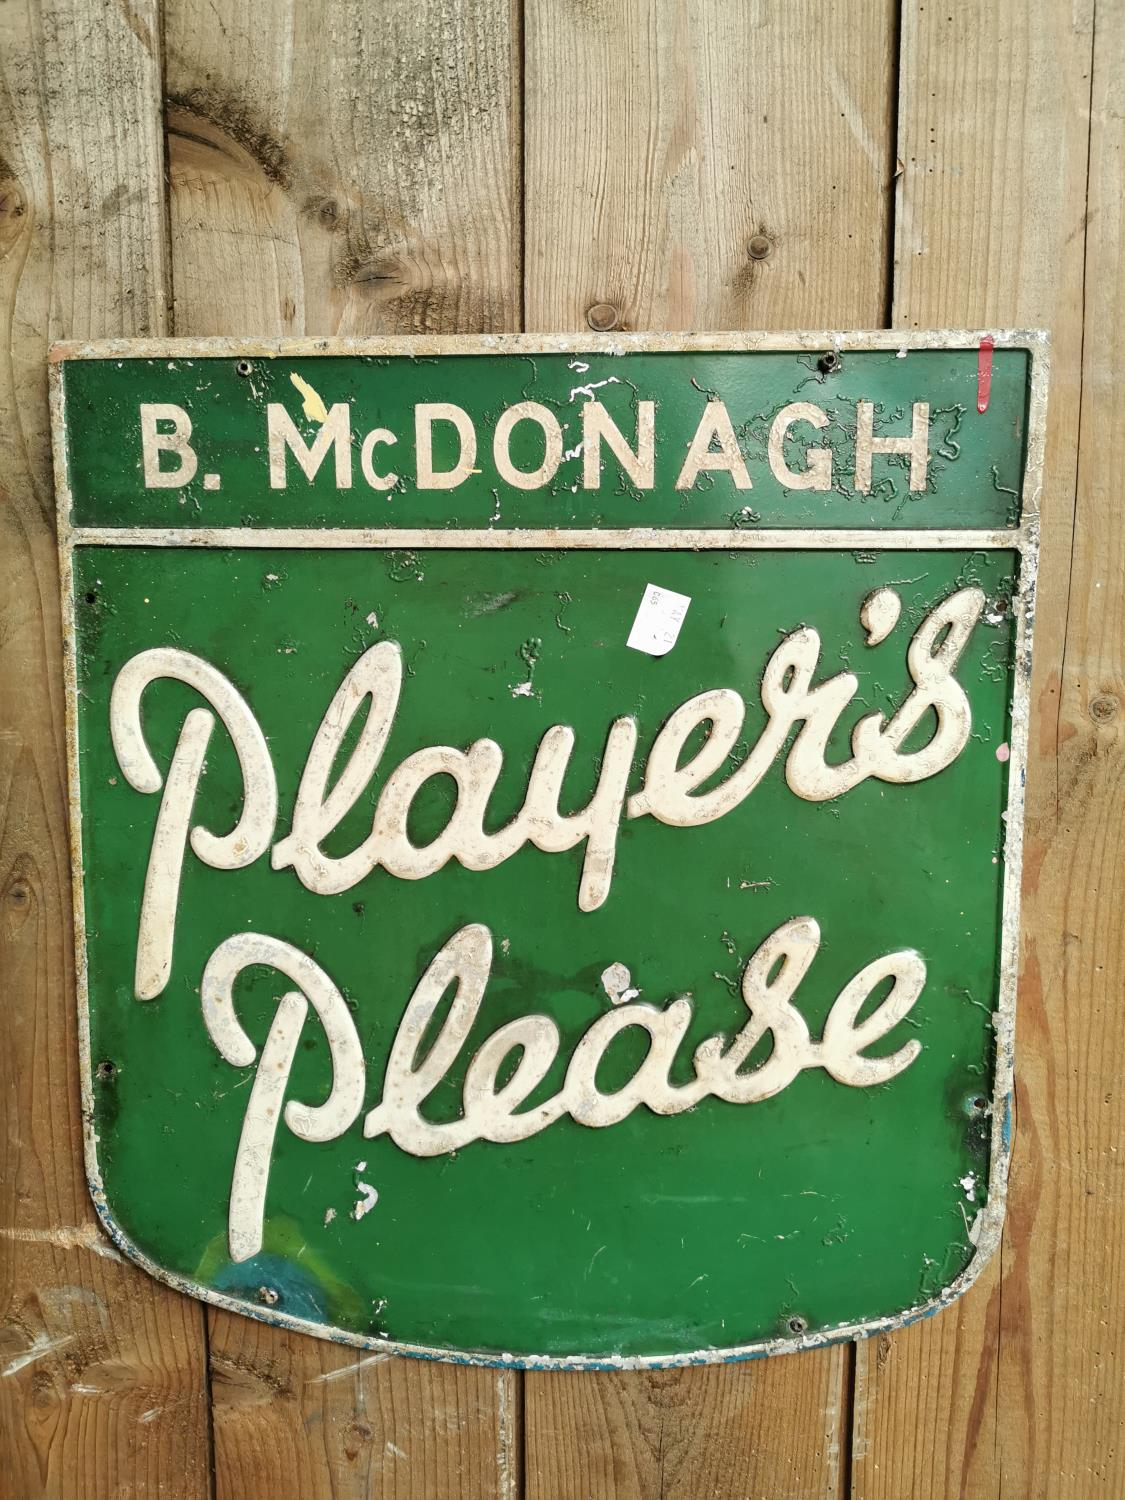 Players Please alloy advertising sign.